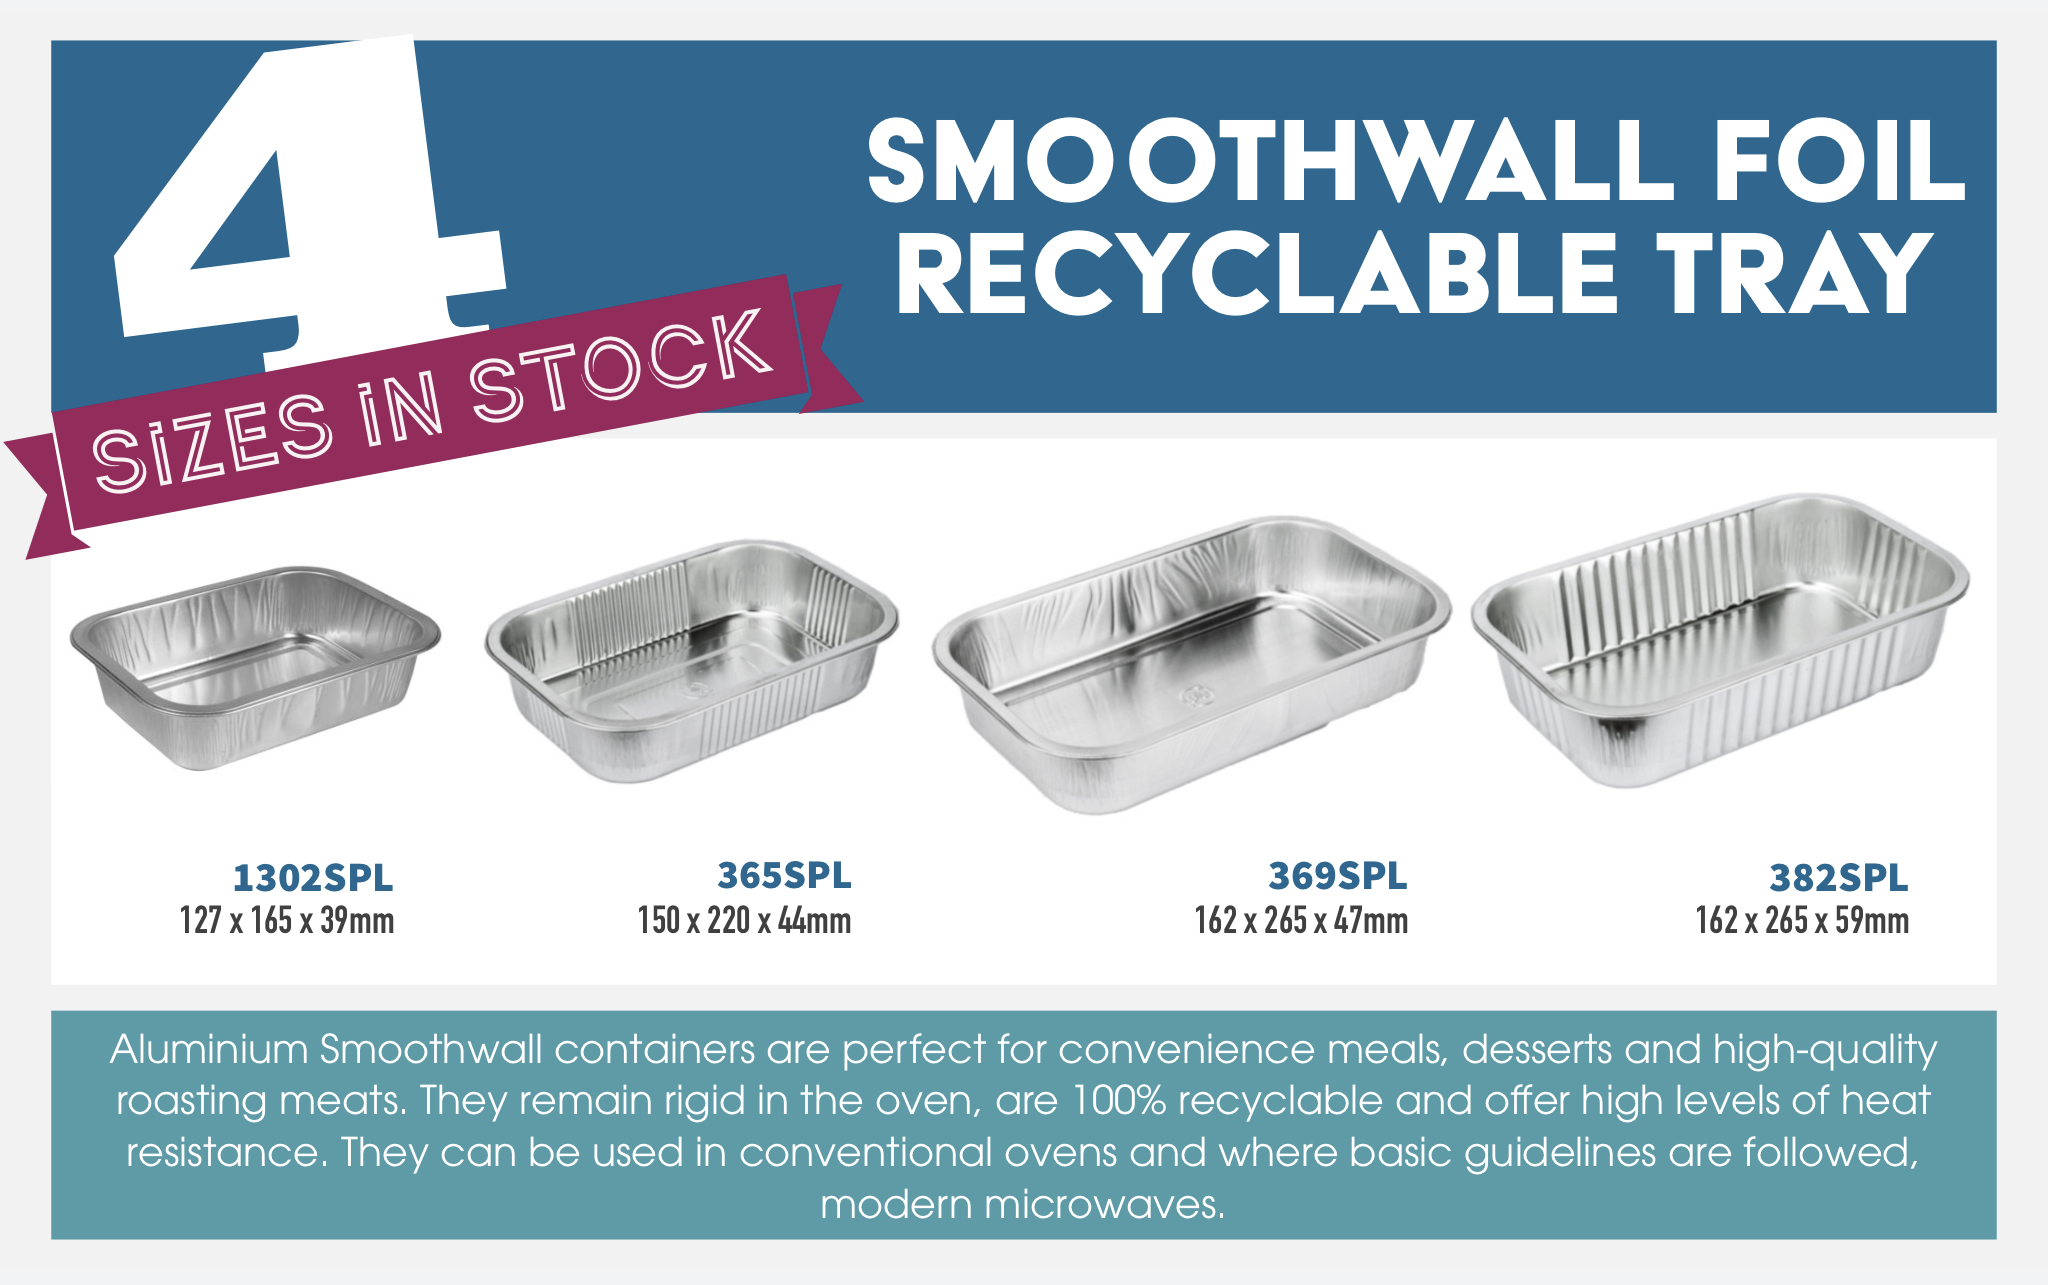 Recyclable Smoothwall foil trays